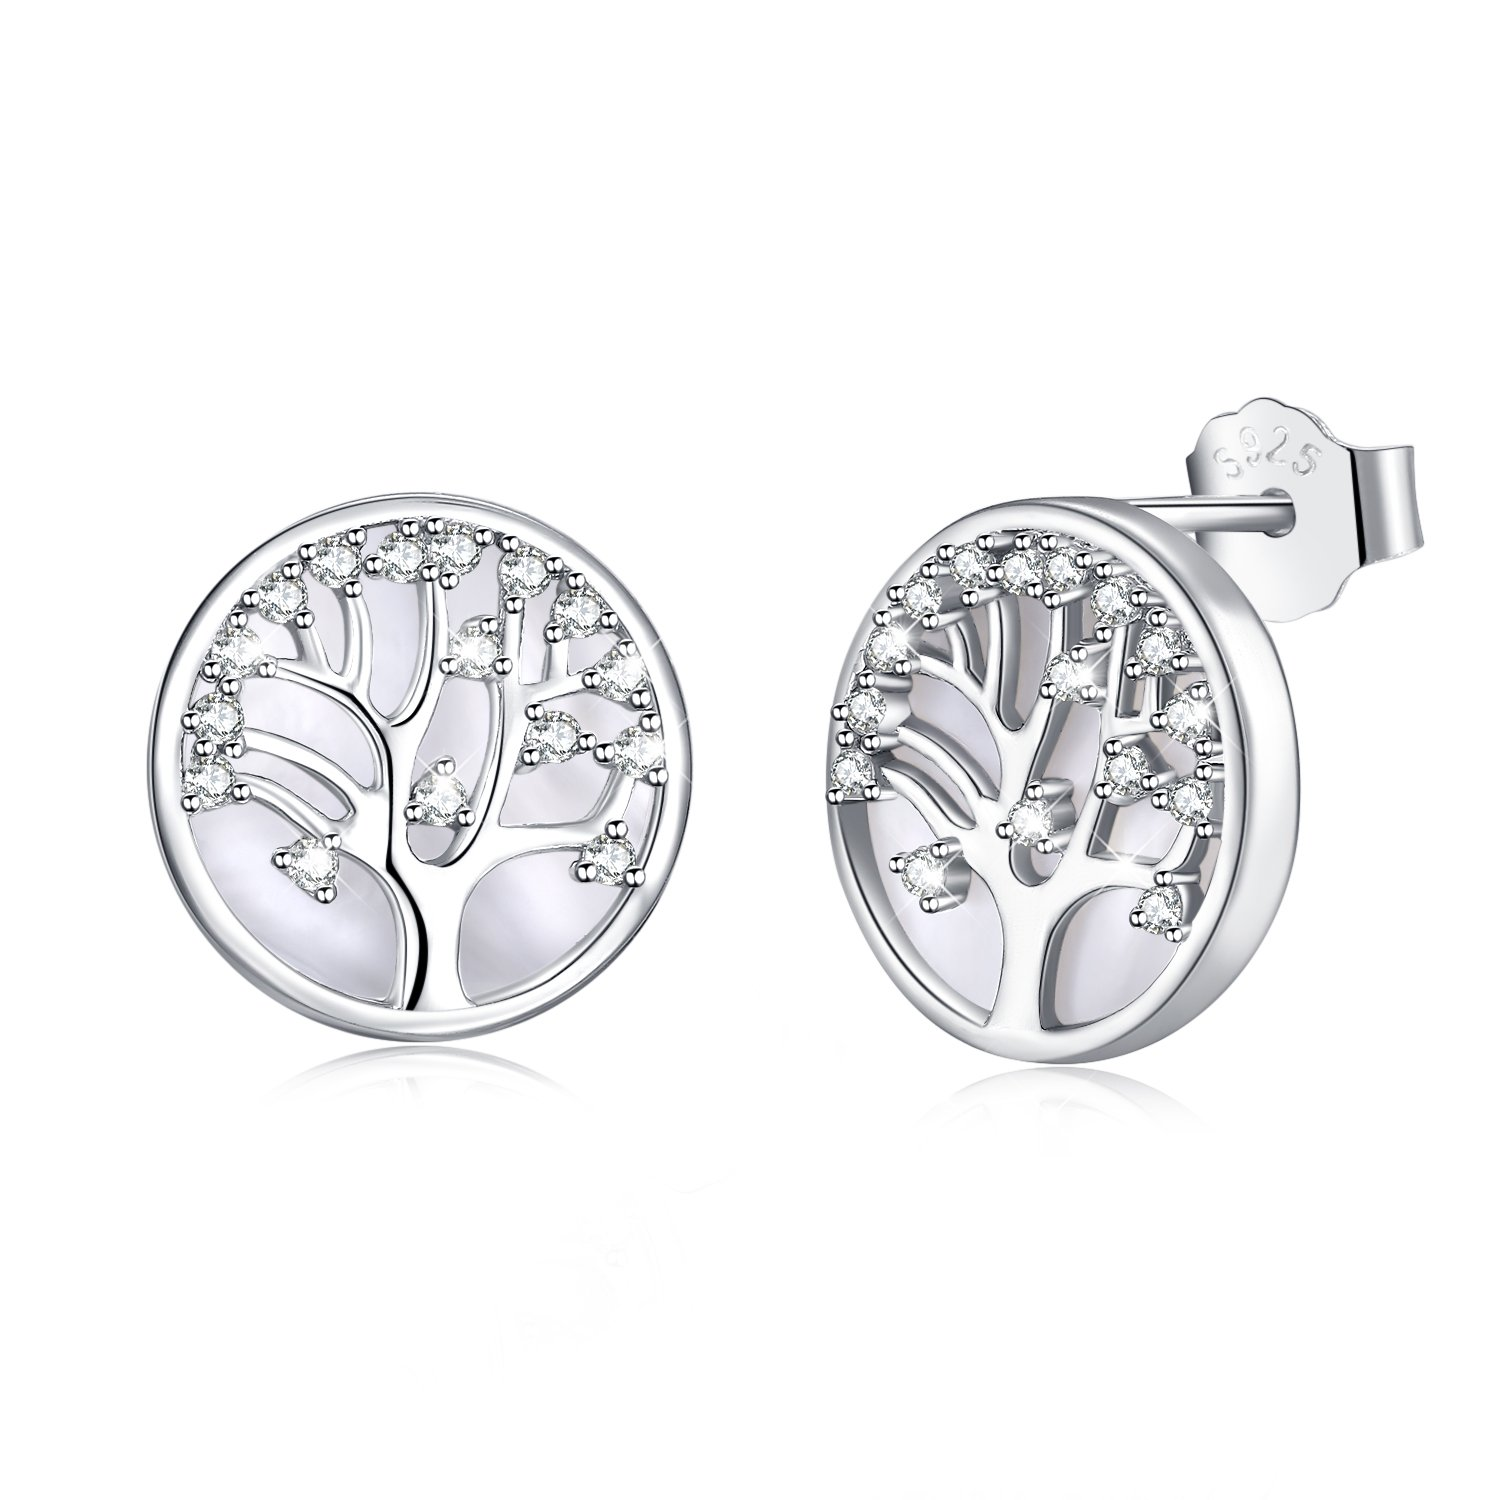 MEGACHIC Women Tree of Life Women's Sterling Silver Mother of Pearl Stud Earrings Crystals from Swarovski